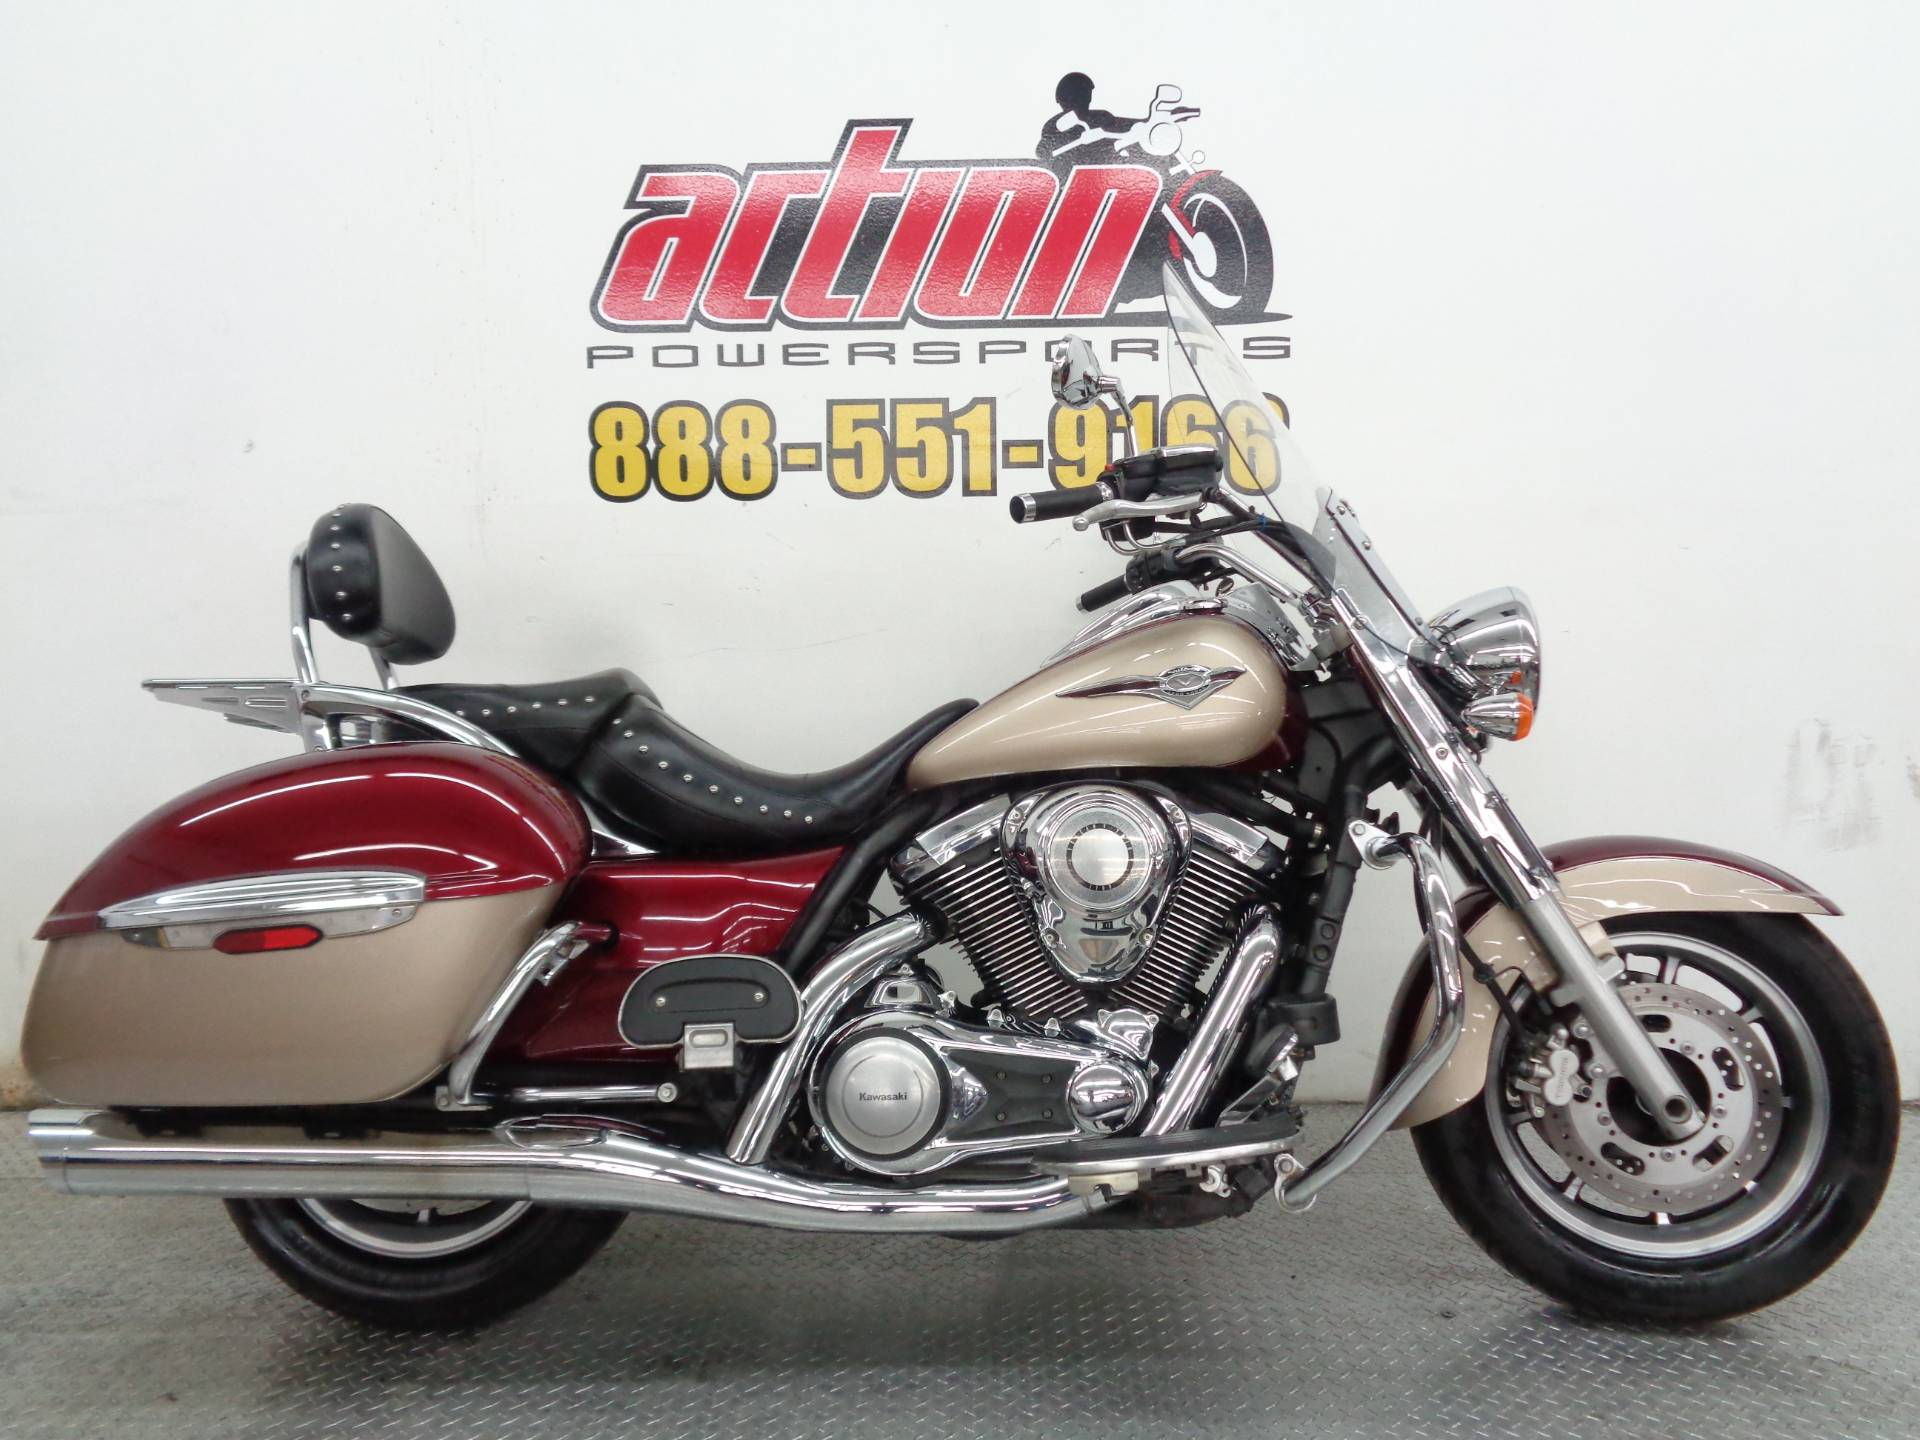 2009 Kawasaki Vulcan 1700 Nomad for sale 799